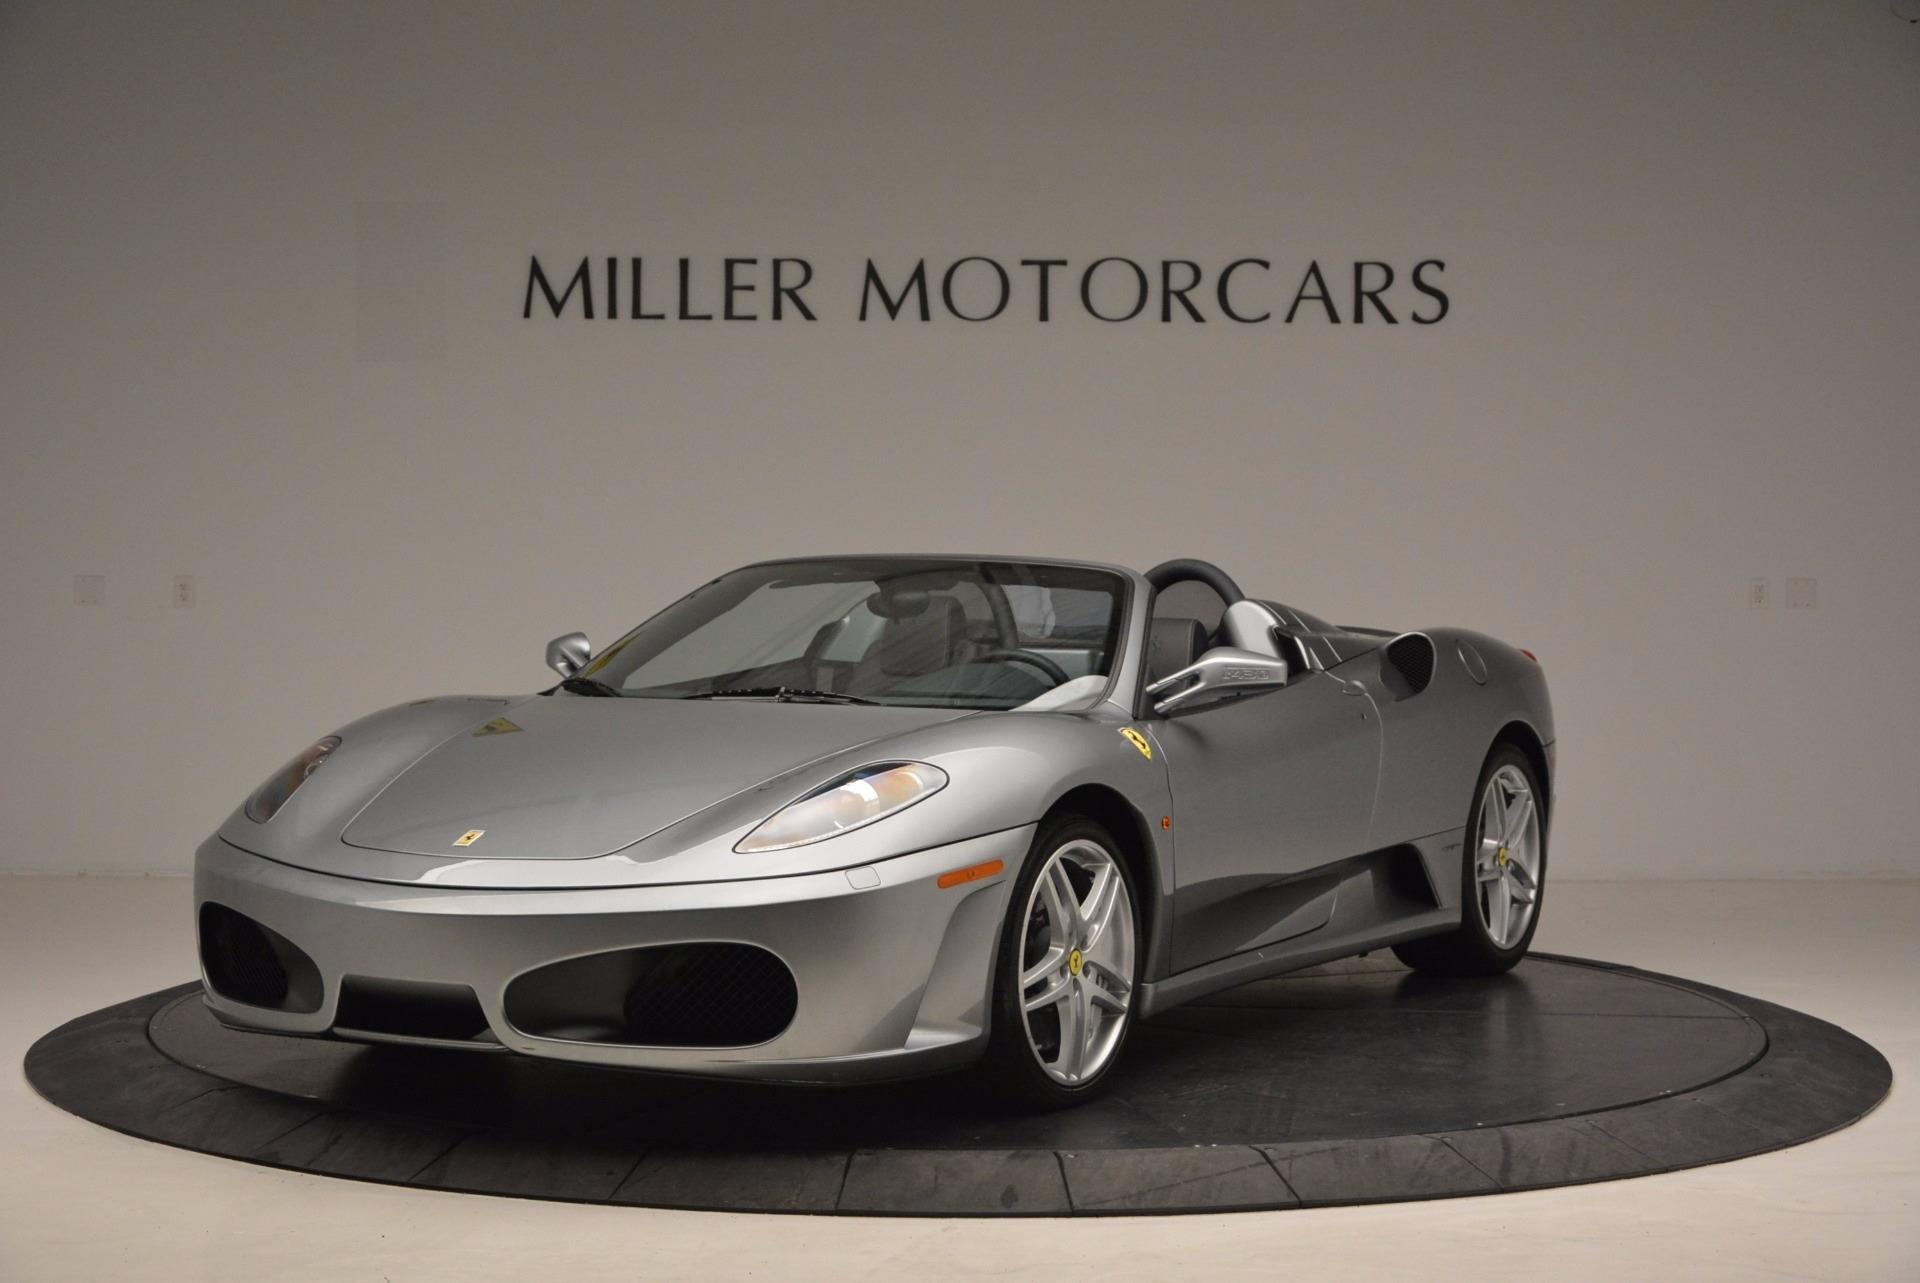 Used 2007 Ferrari F430 Spider for sale Sold at Maserati of Westport in Westport CT 06880 1